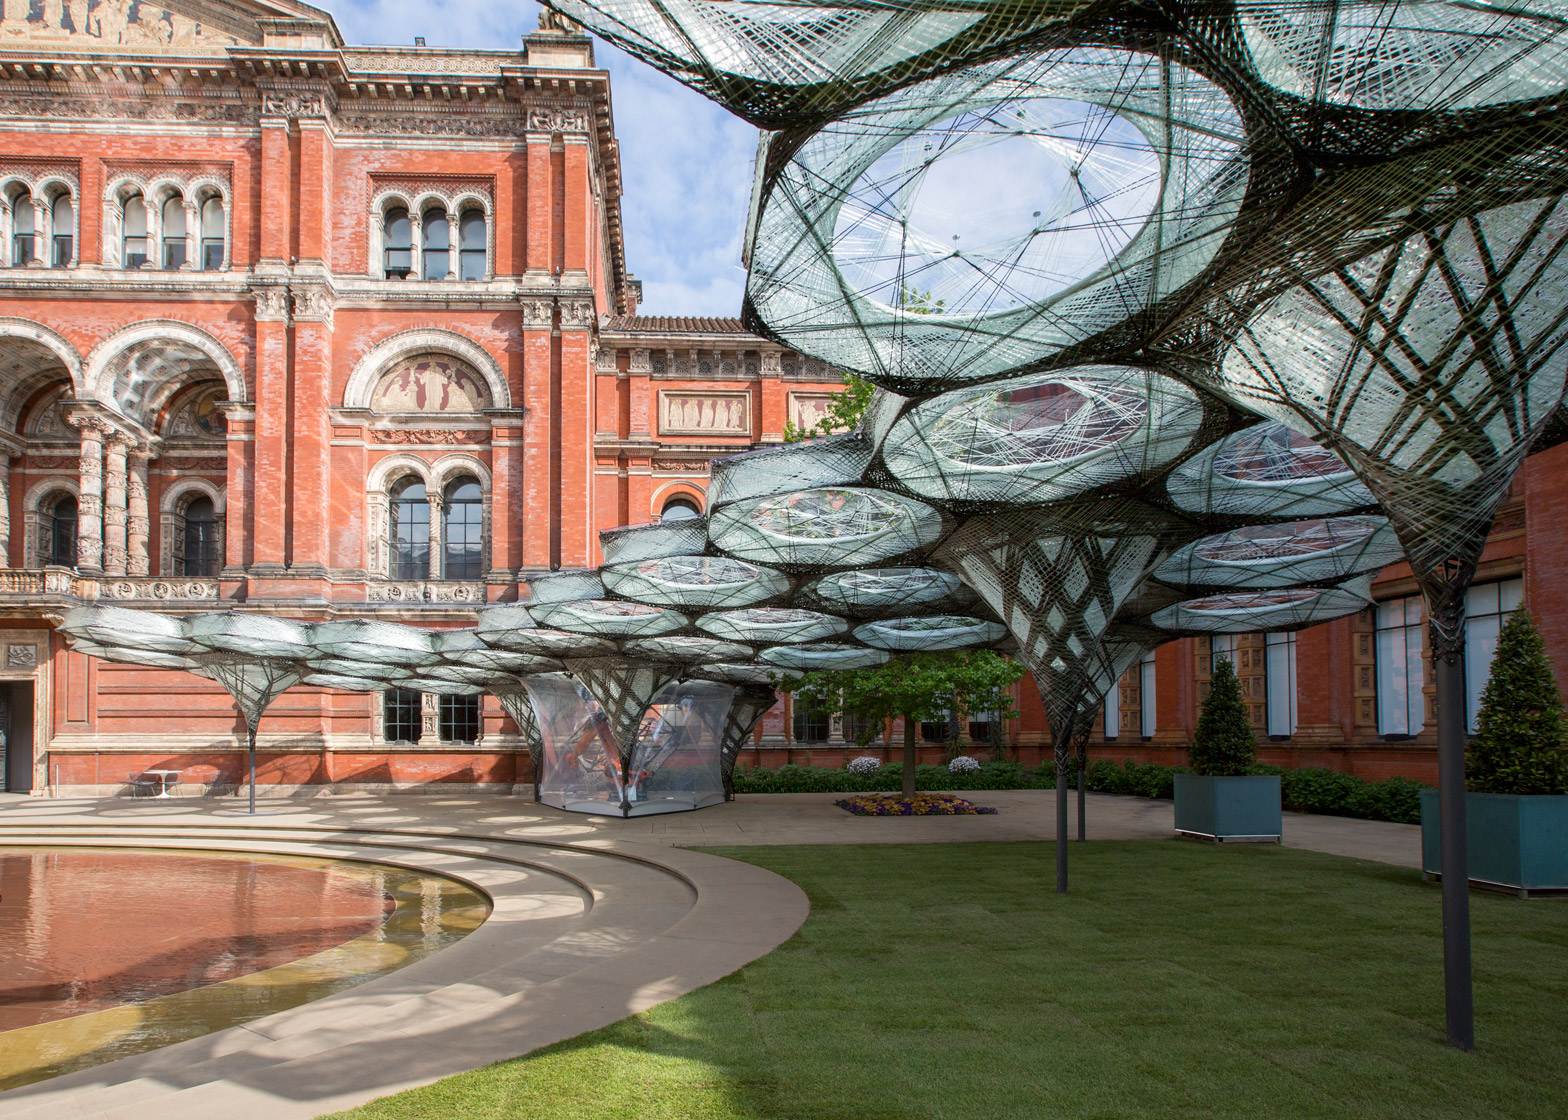 Elytra Filament Pavilion by Achim Menges for the V&A Museum is modelled on flying beetle wings